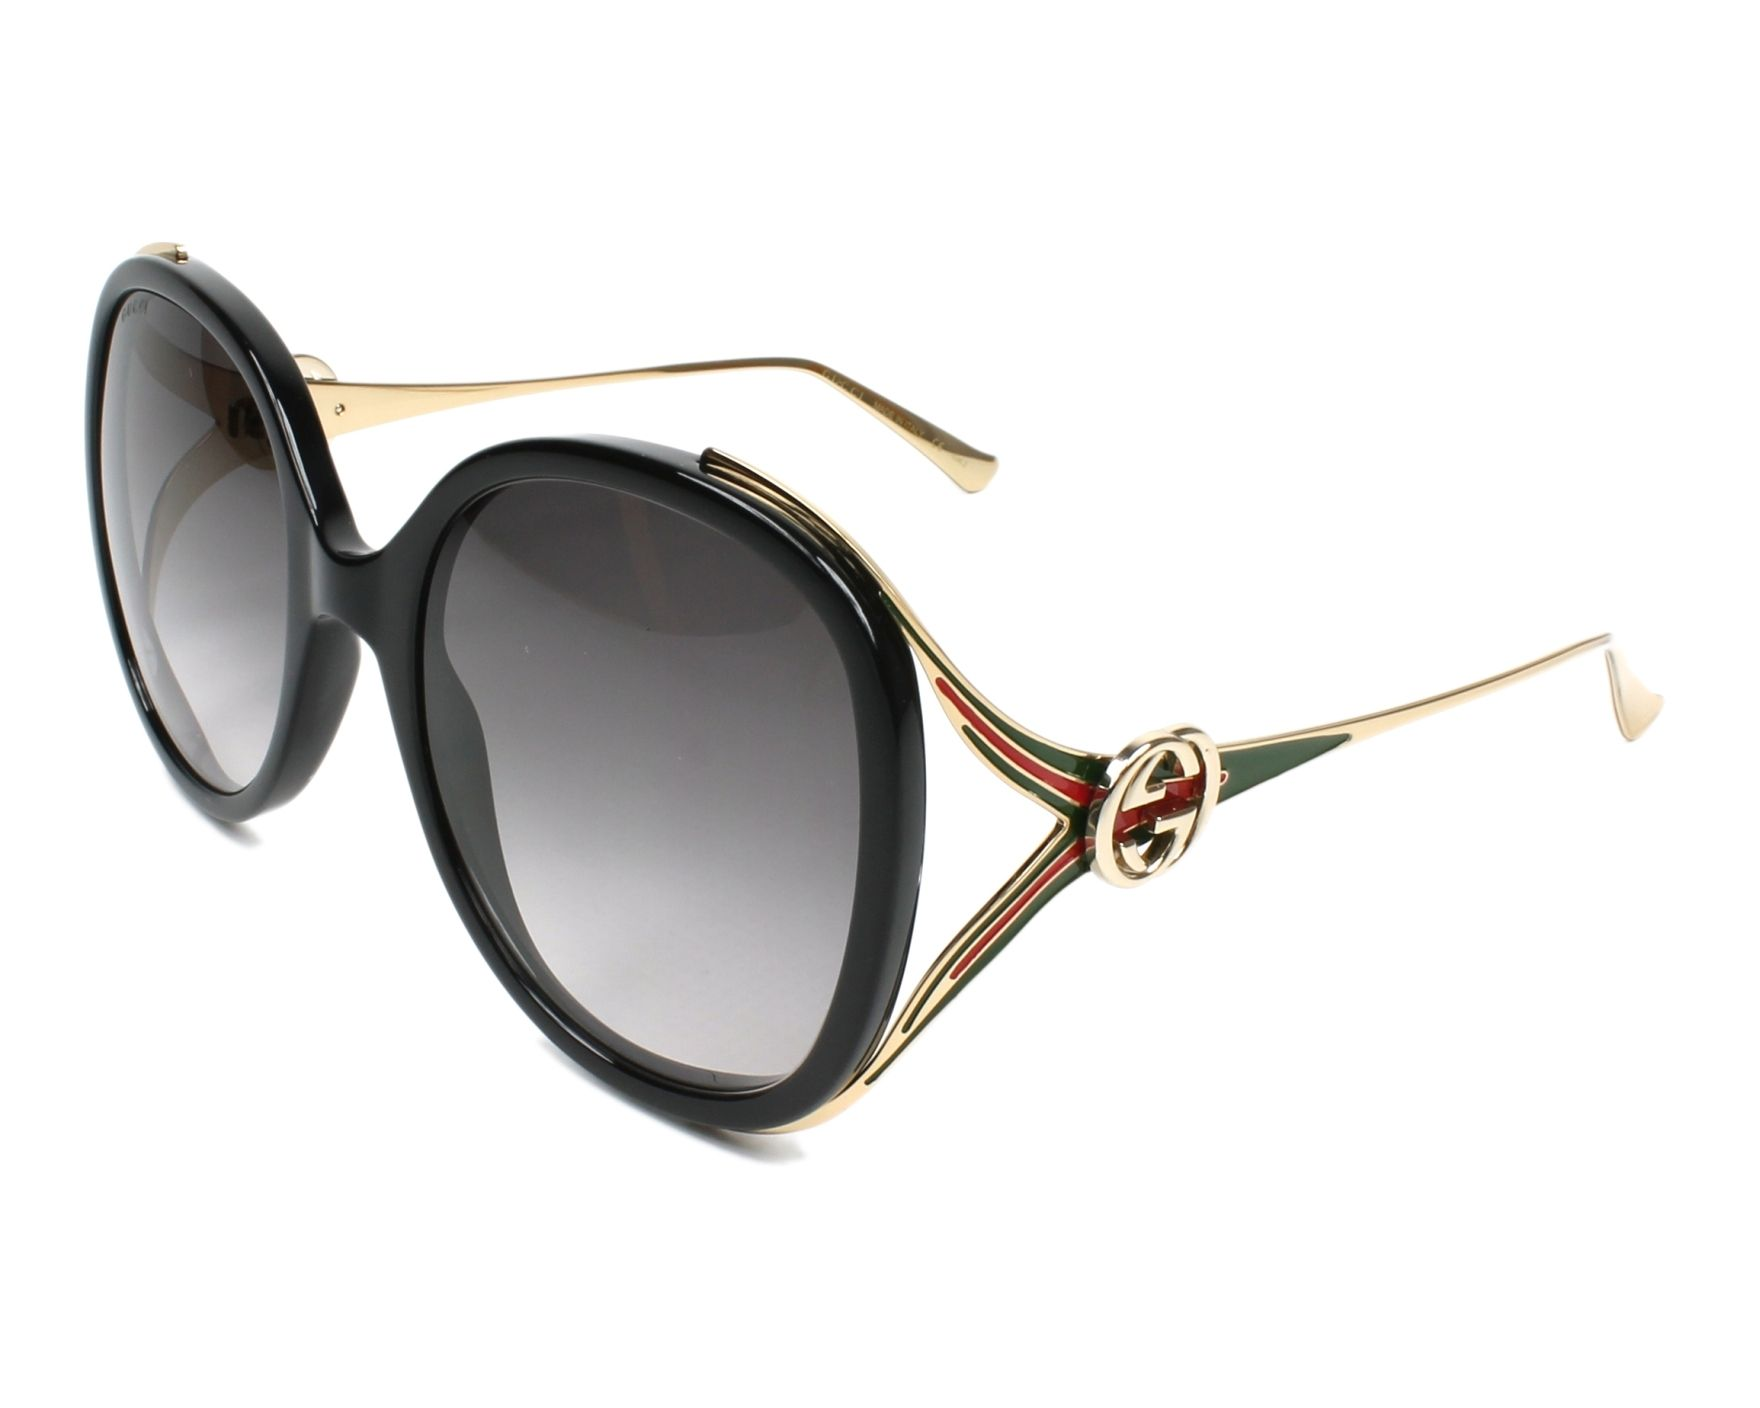 cd0aaf60760 Sunglasses Gucci GG-0226-S 001 56-22 Black Gold profile view